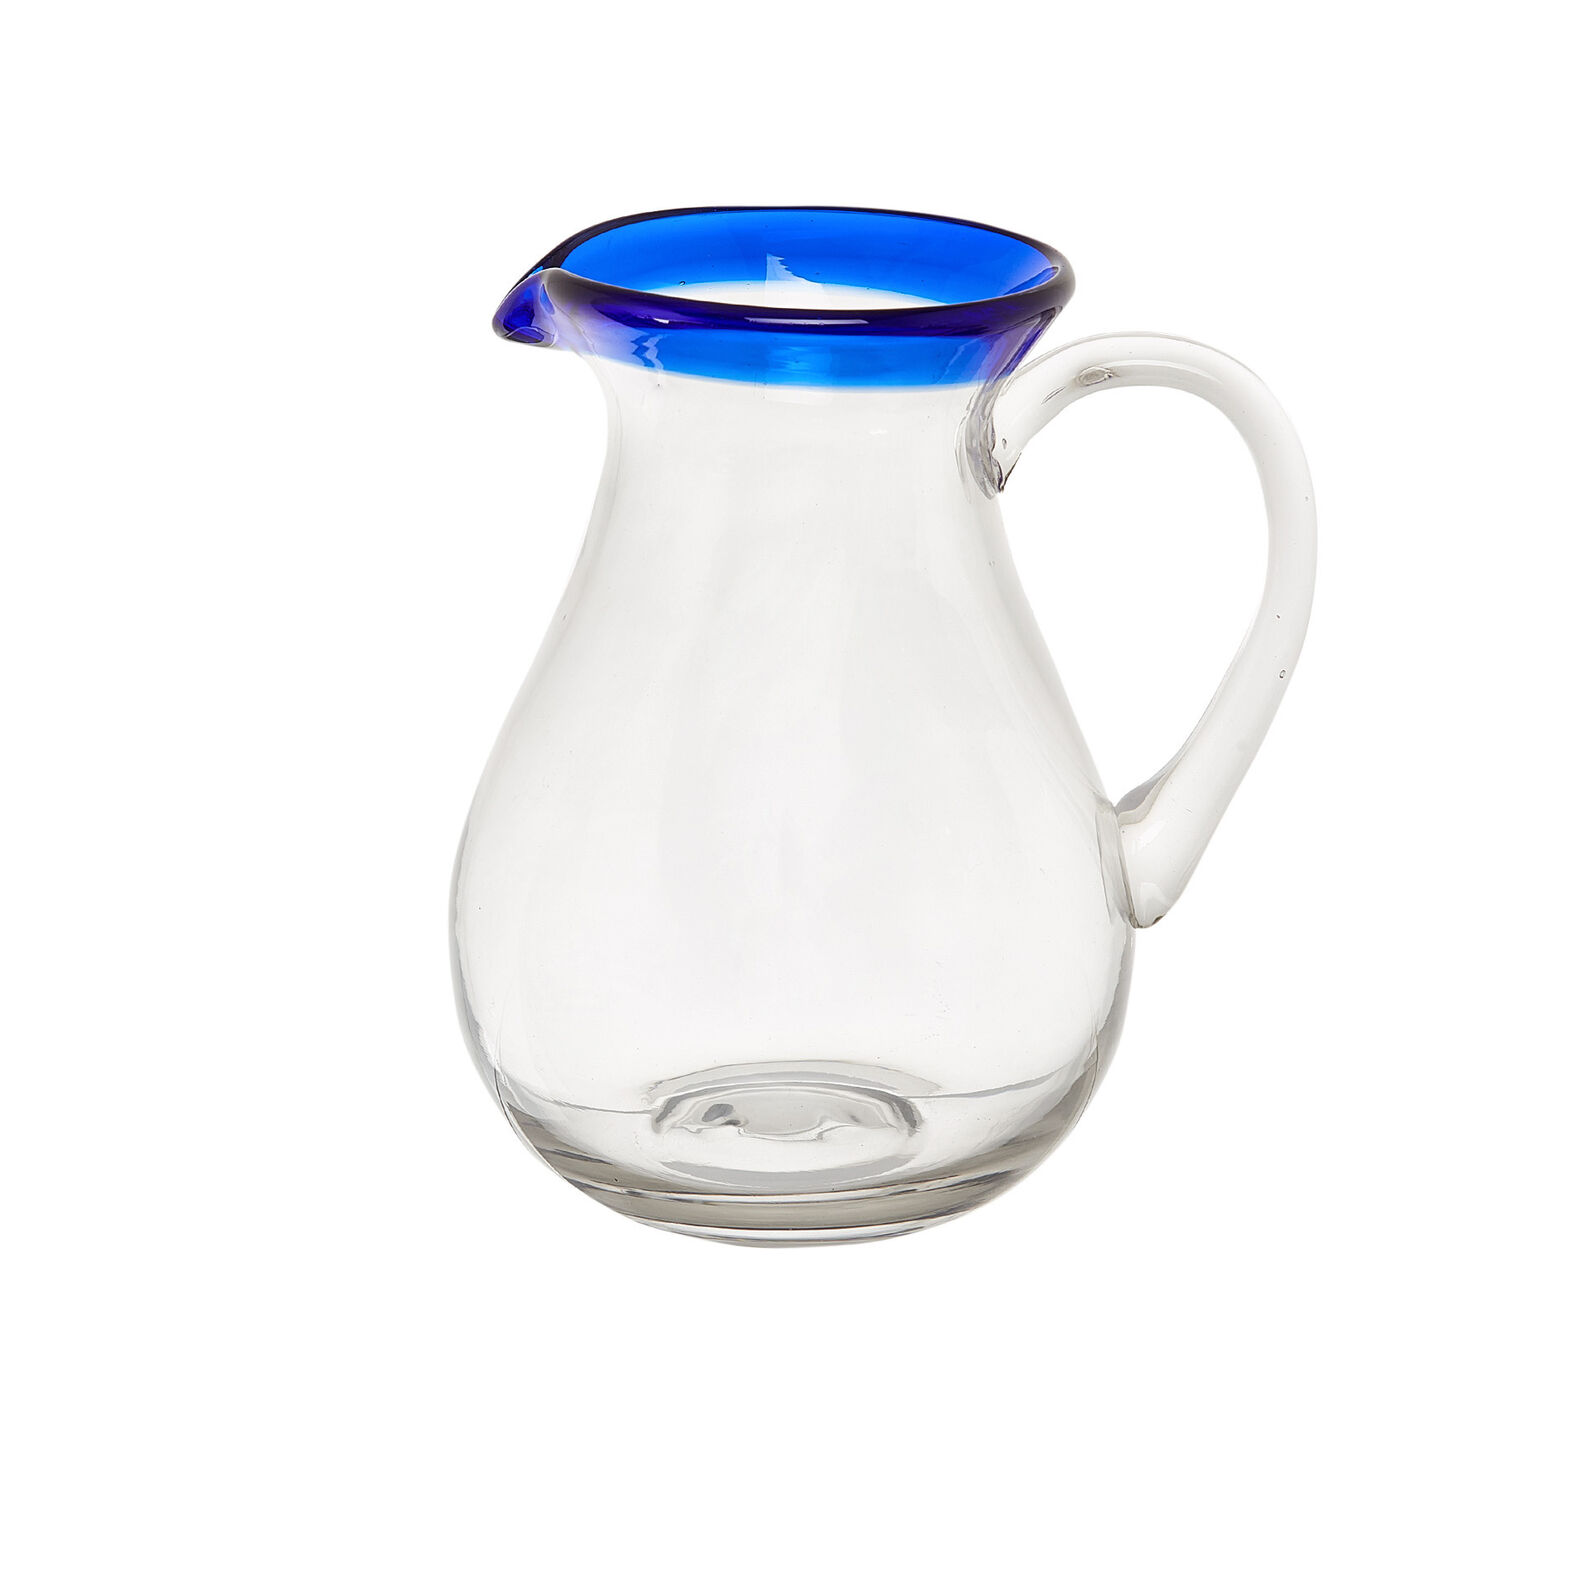 Glass carafe with blue rim